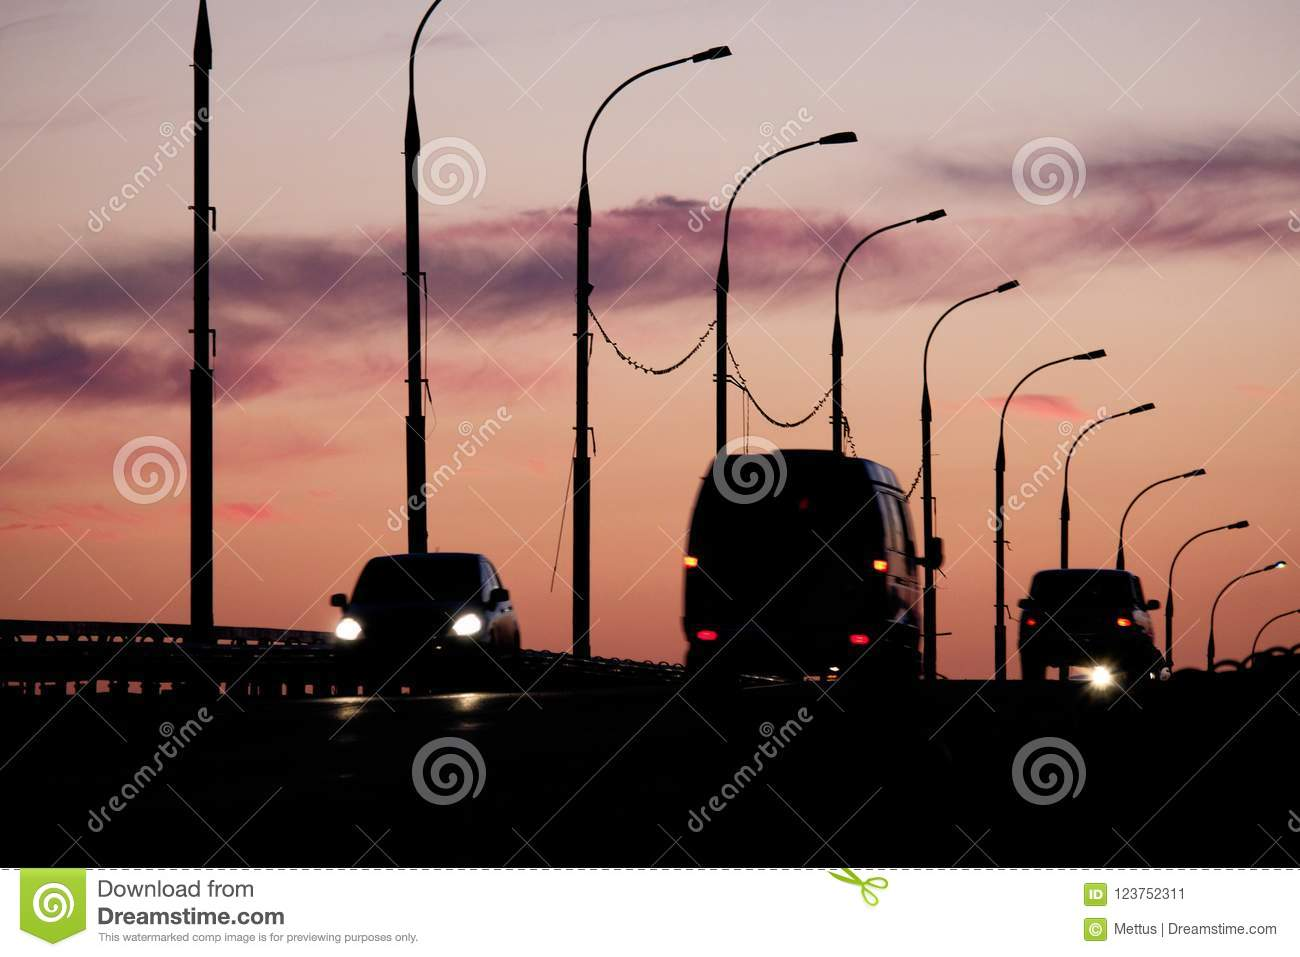 a840eb3672 Silhouettes of cars and vans in front of pink-orange sunset sky with  silhouettes of streetlamps